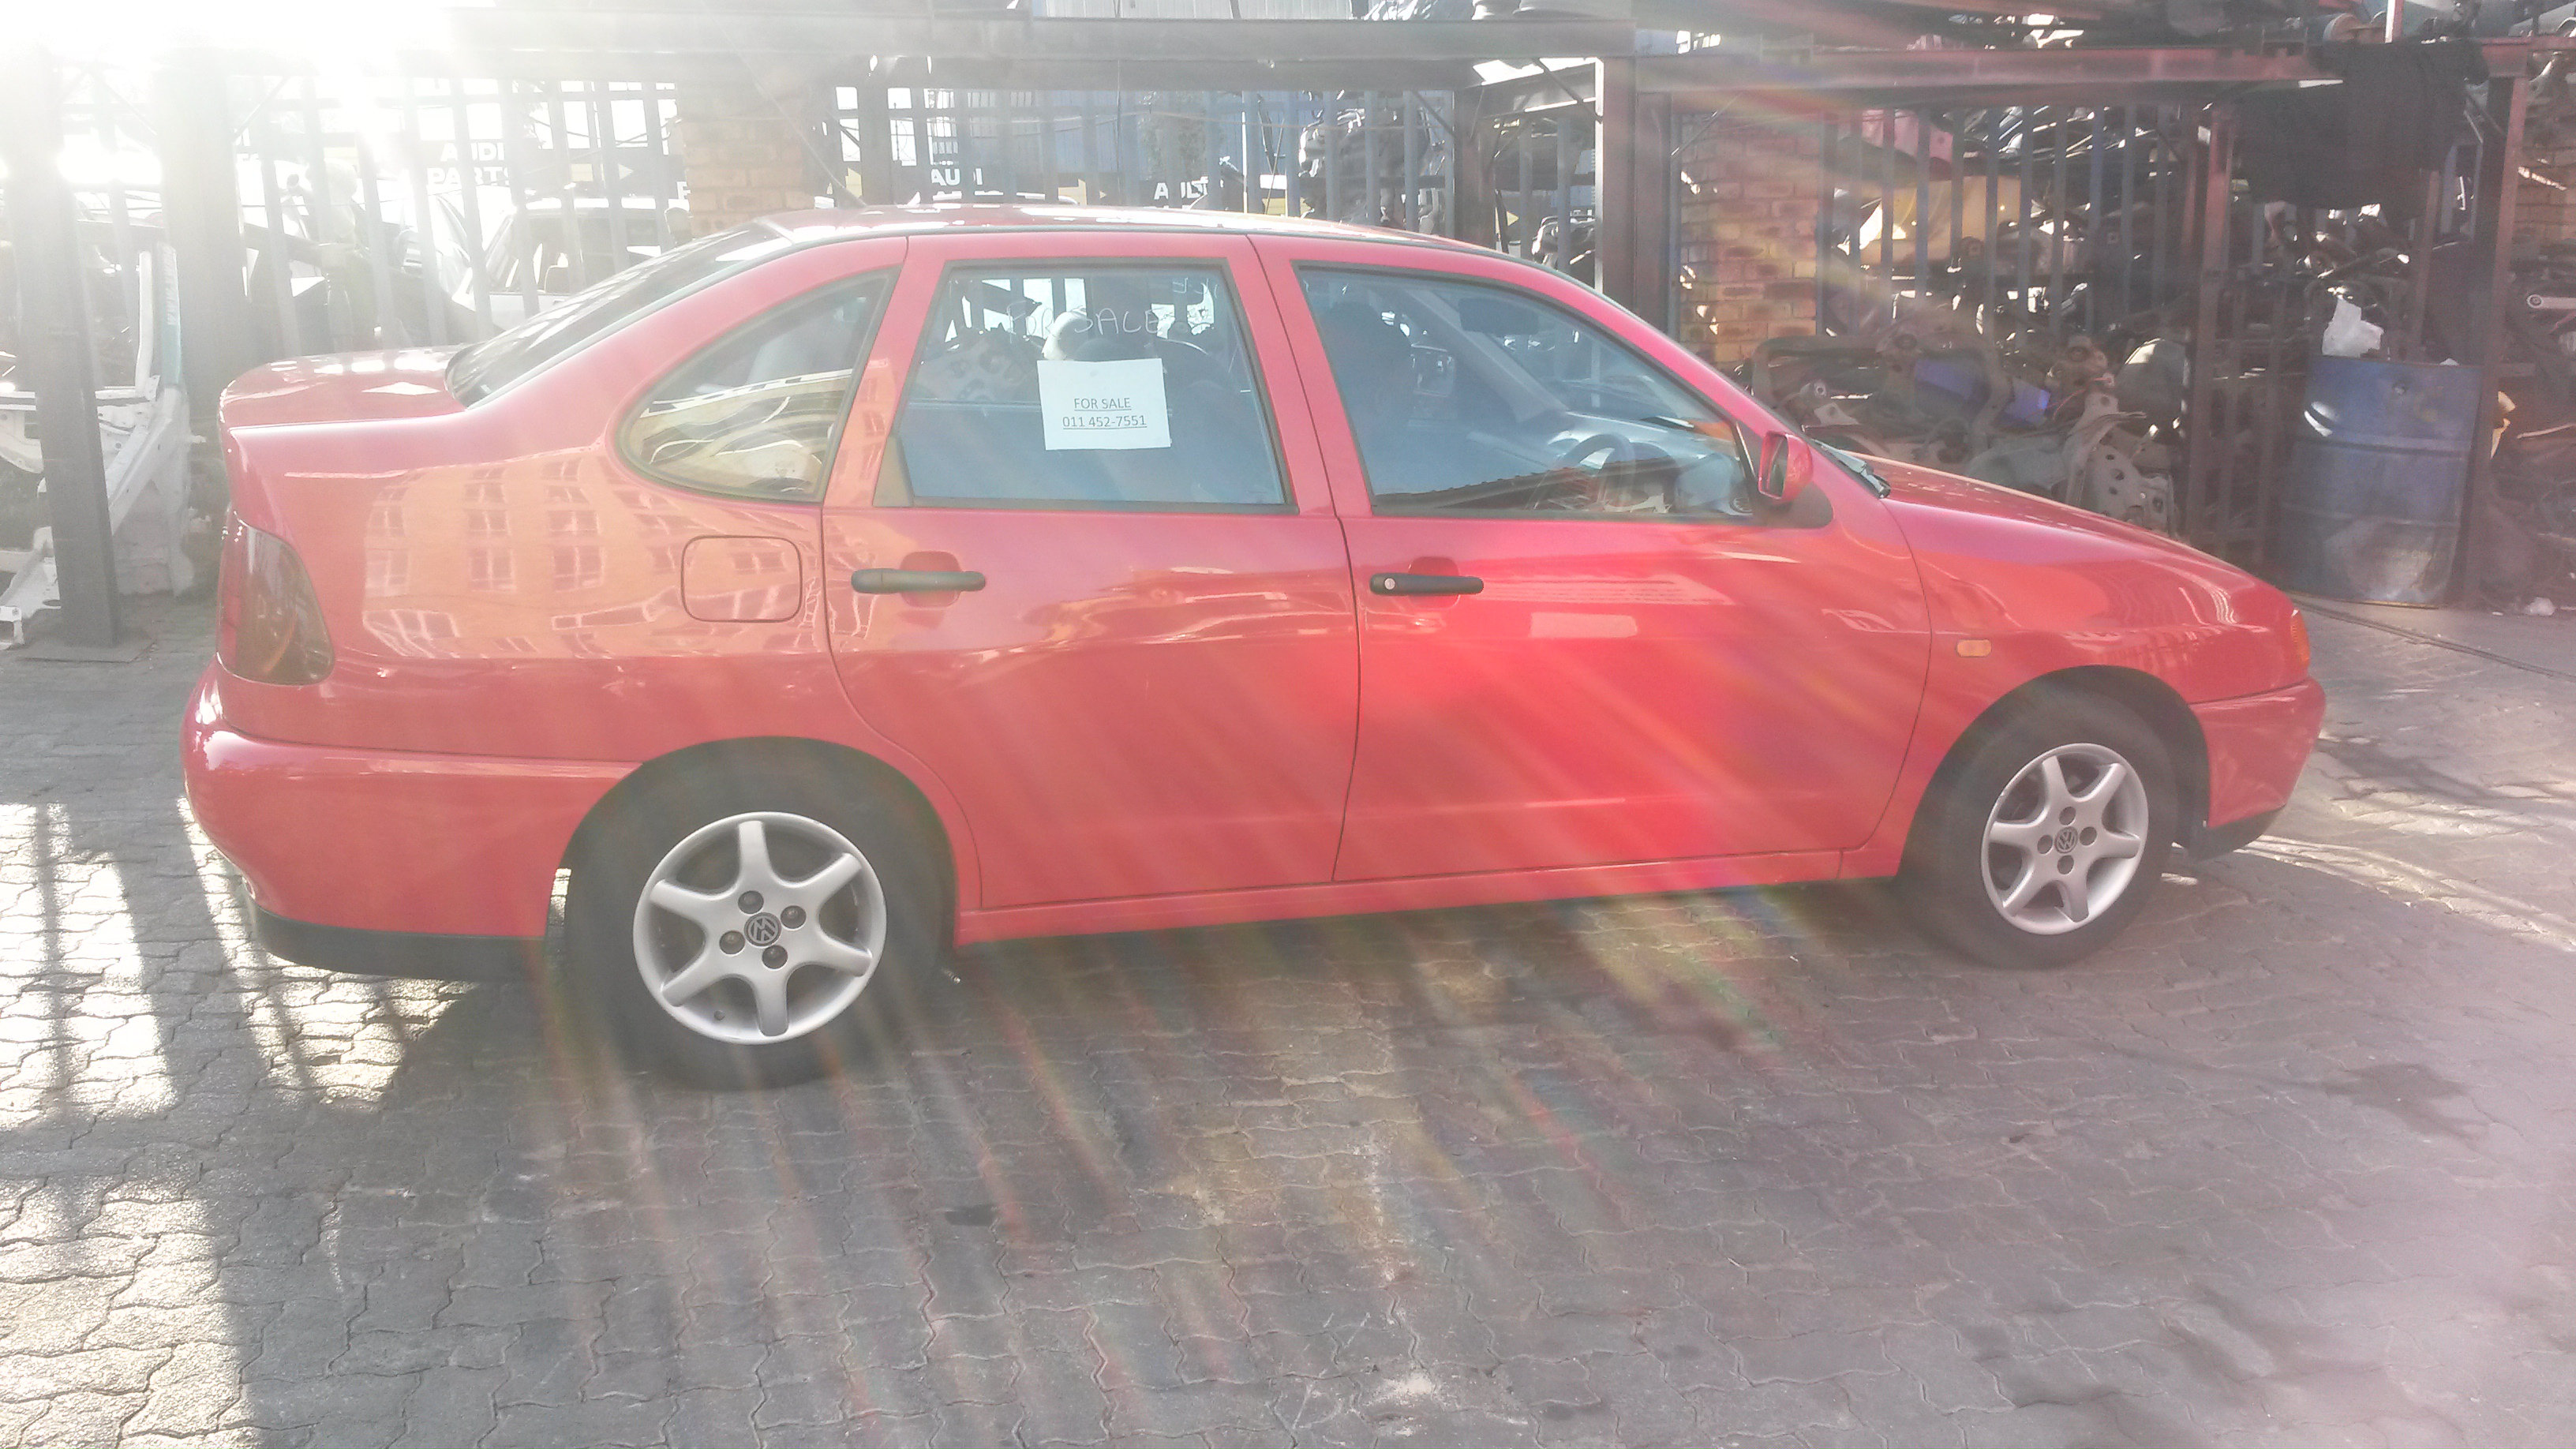 bishops auto spares vw polo classic for sale. Black Bedroom Furniture Sets. Home Design Ideas